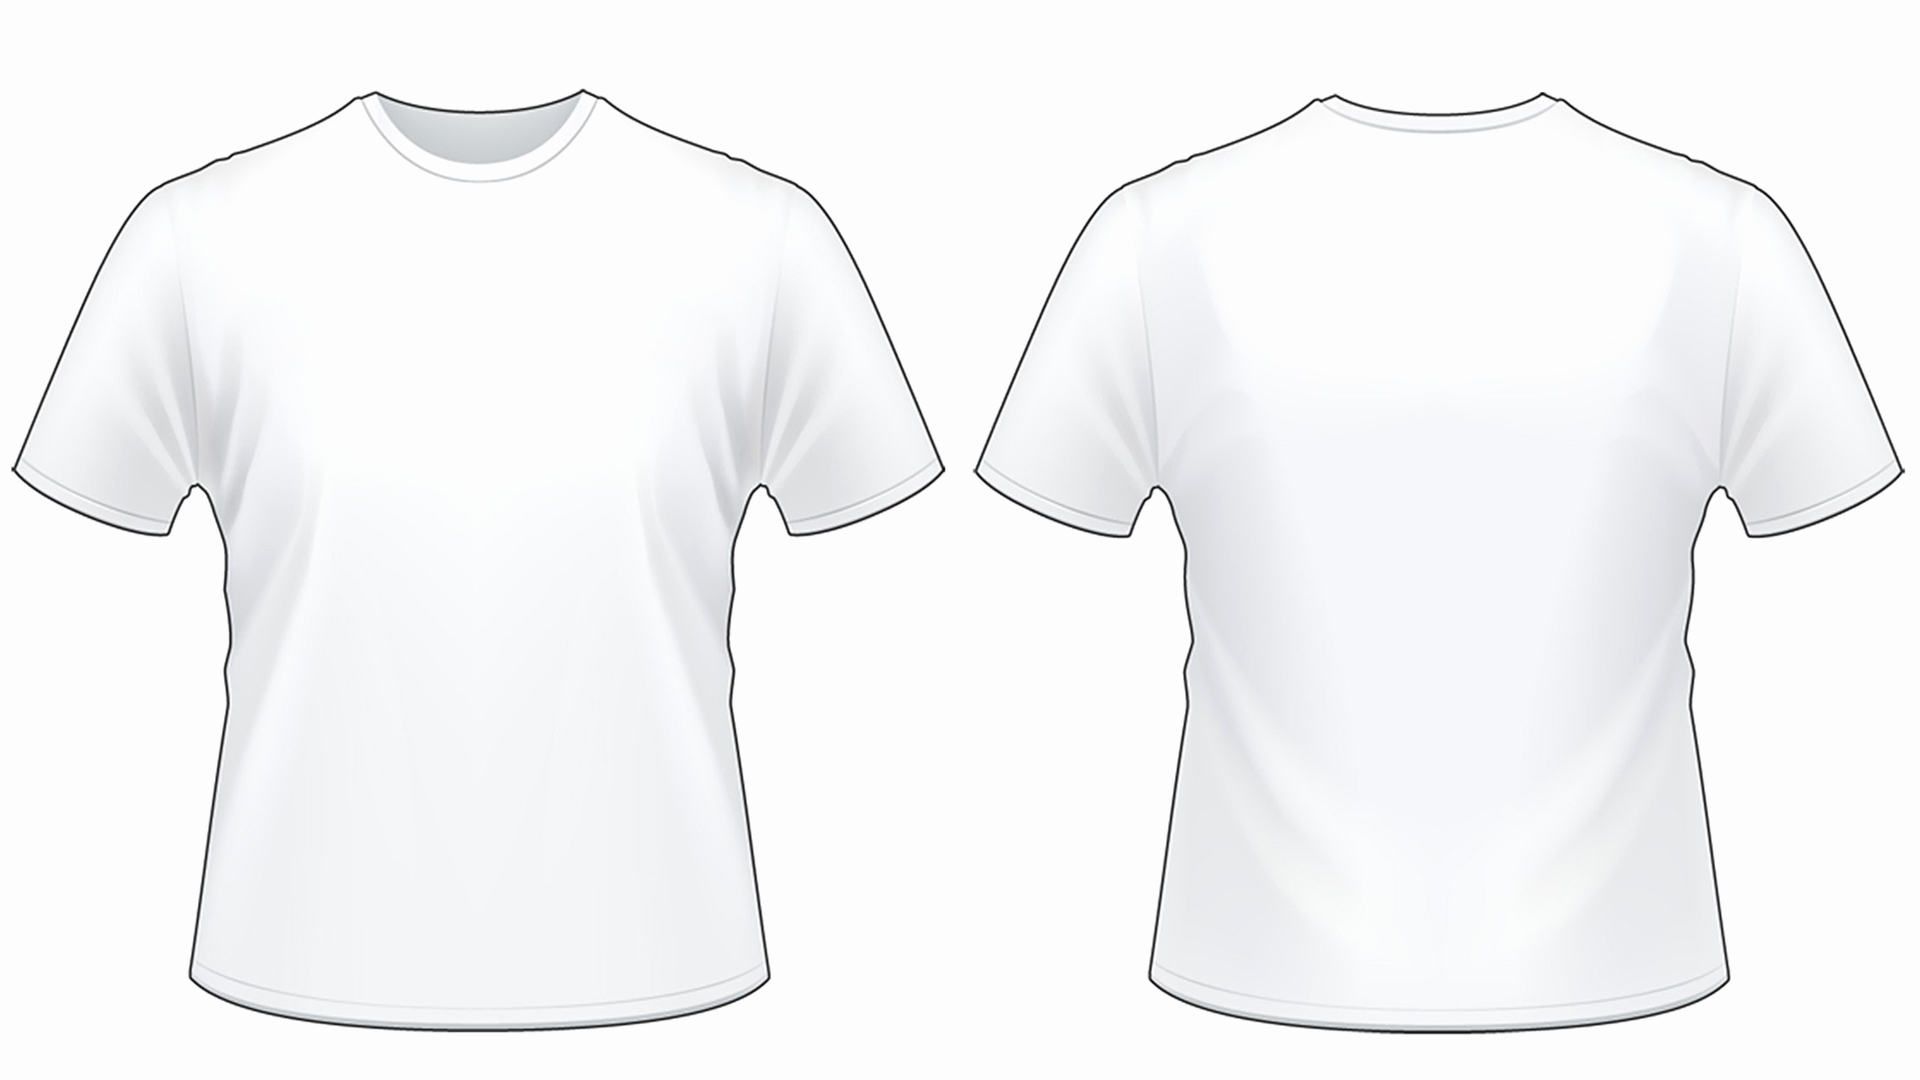 T Shirt Photoshop Template Awesome Blank Tshirt Template Worksheet In Png Hd Wallpapers